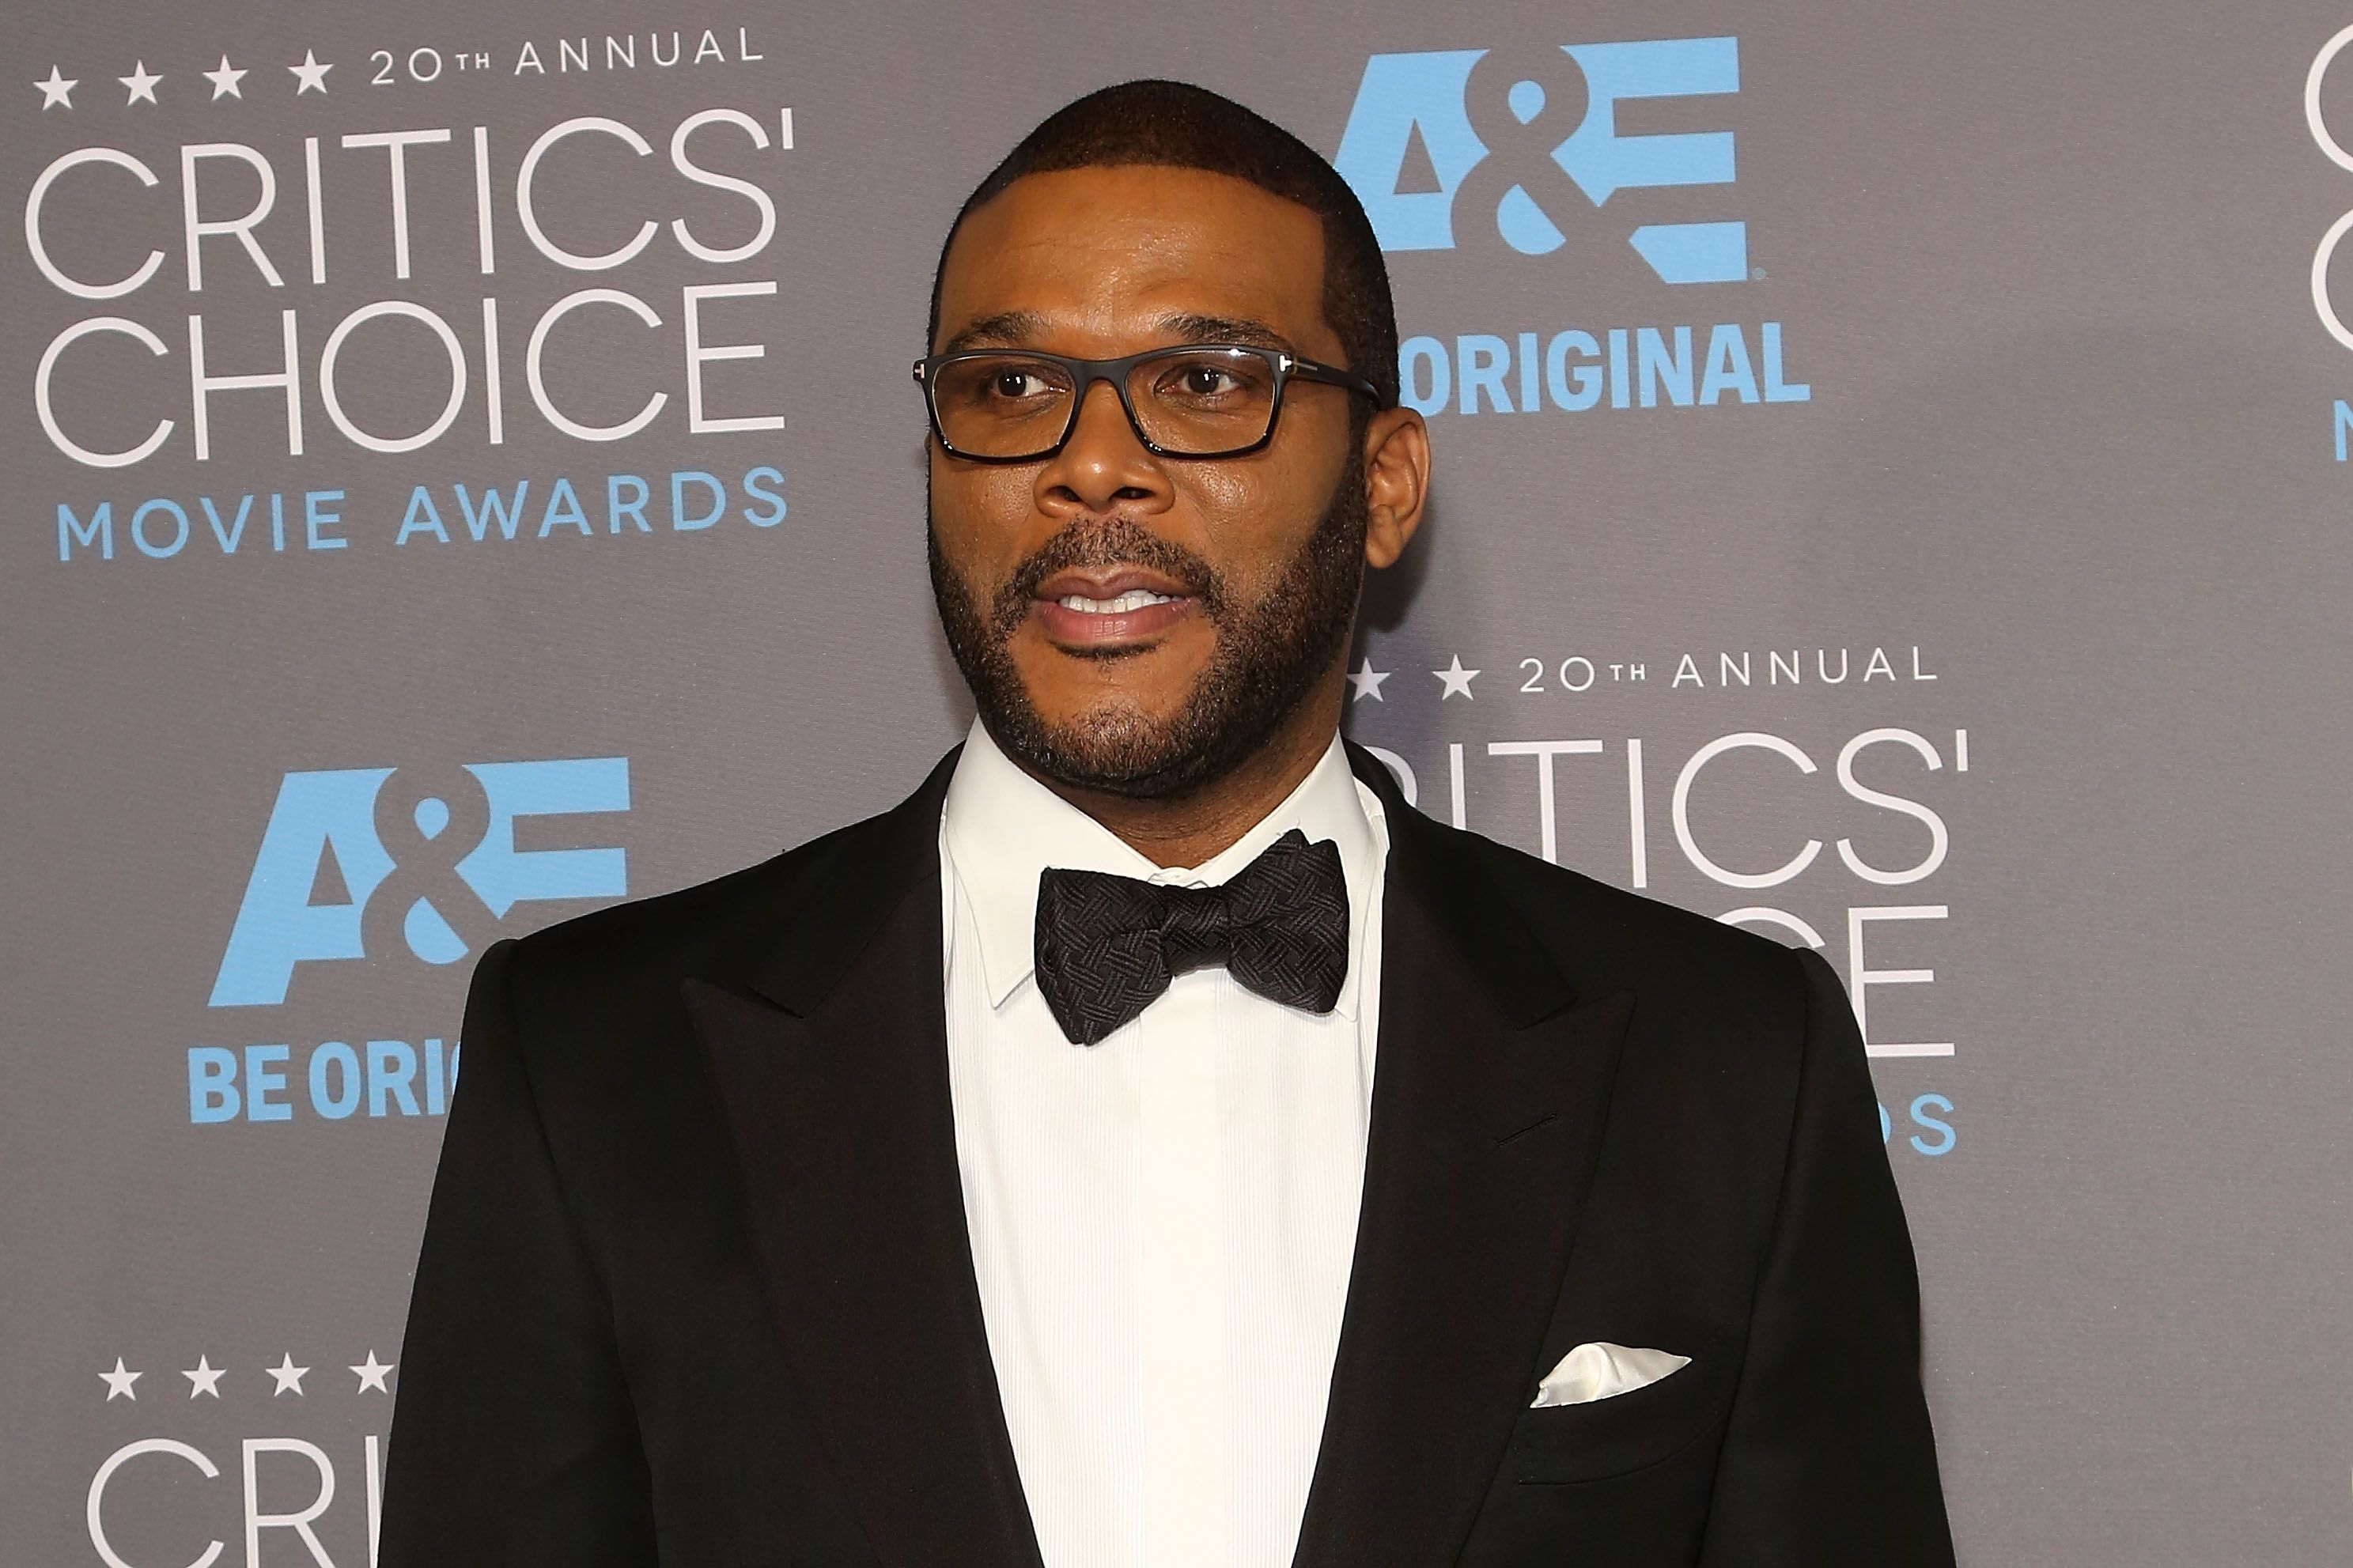 Producer Tyler Perry attends The 20th Annual Critics' Choice Movie Awards at Hollywood Palladium in Los Angeles, California | Photo: Getty Images